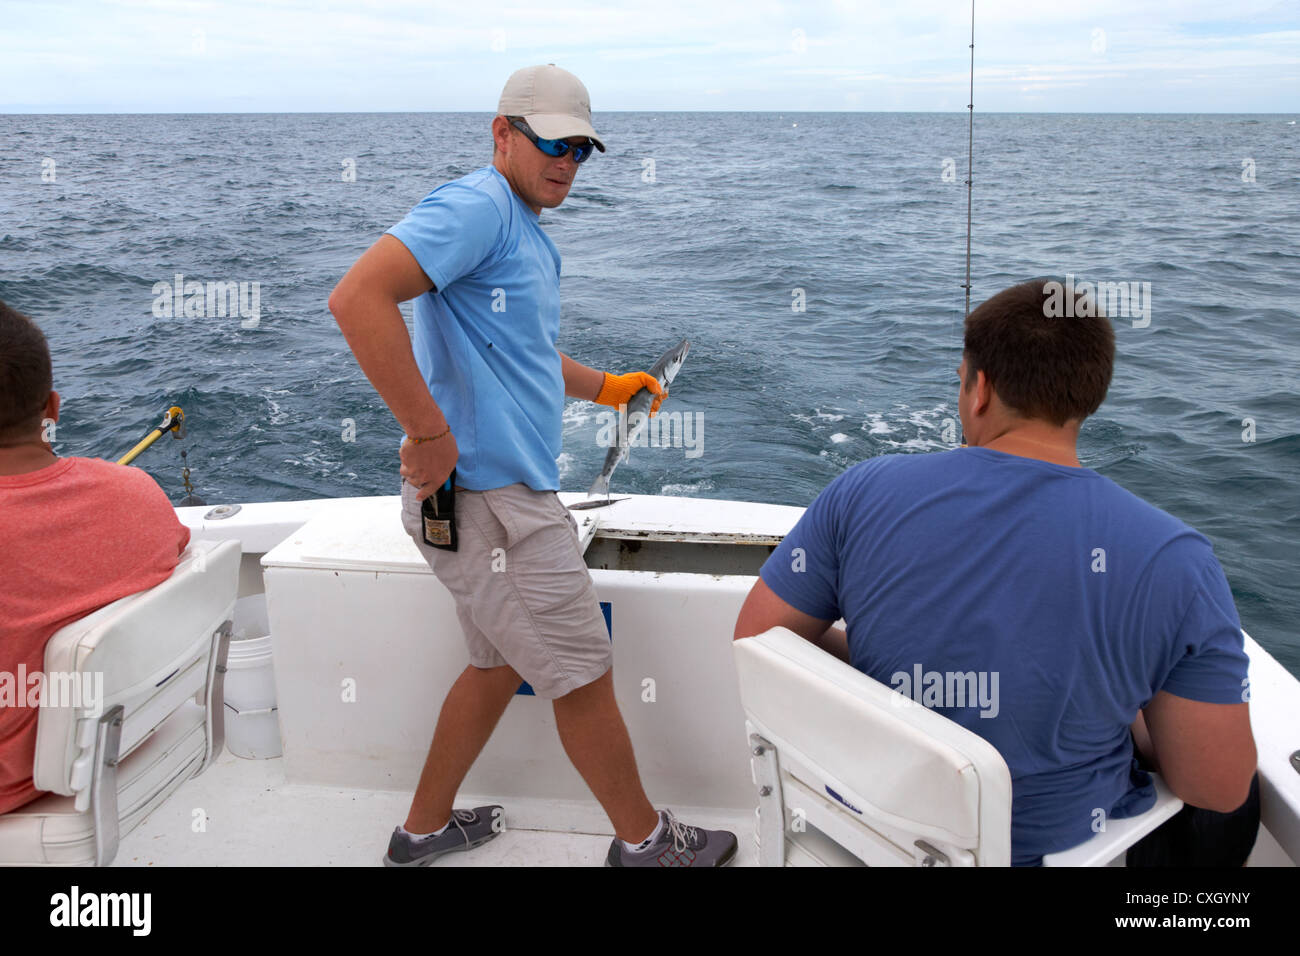 crew member with barracuda fish hooked on a charter fishing boat in the gulf of mexico out of key west florida usa - Stock Image